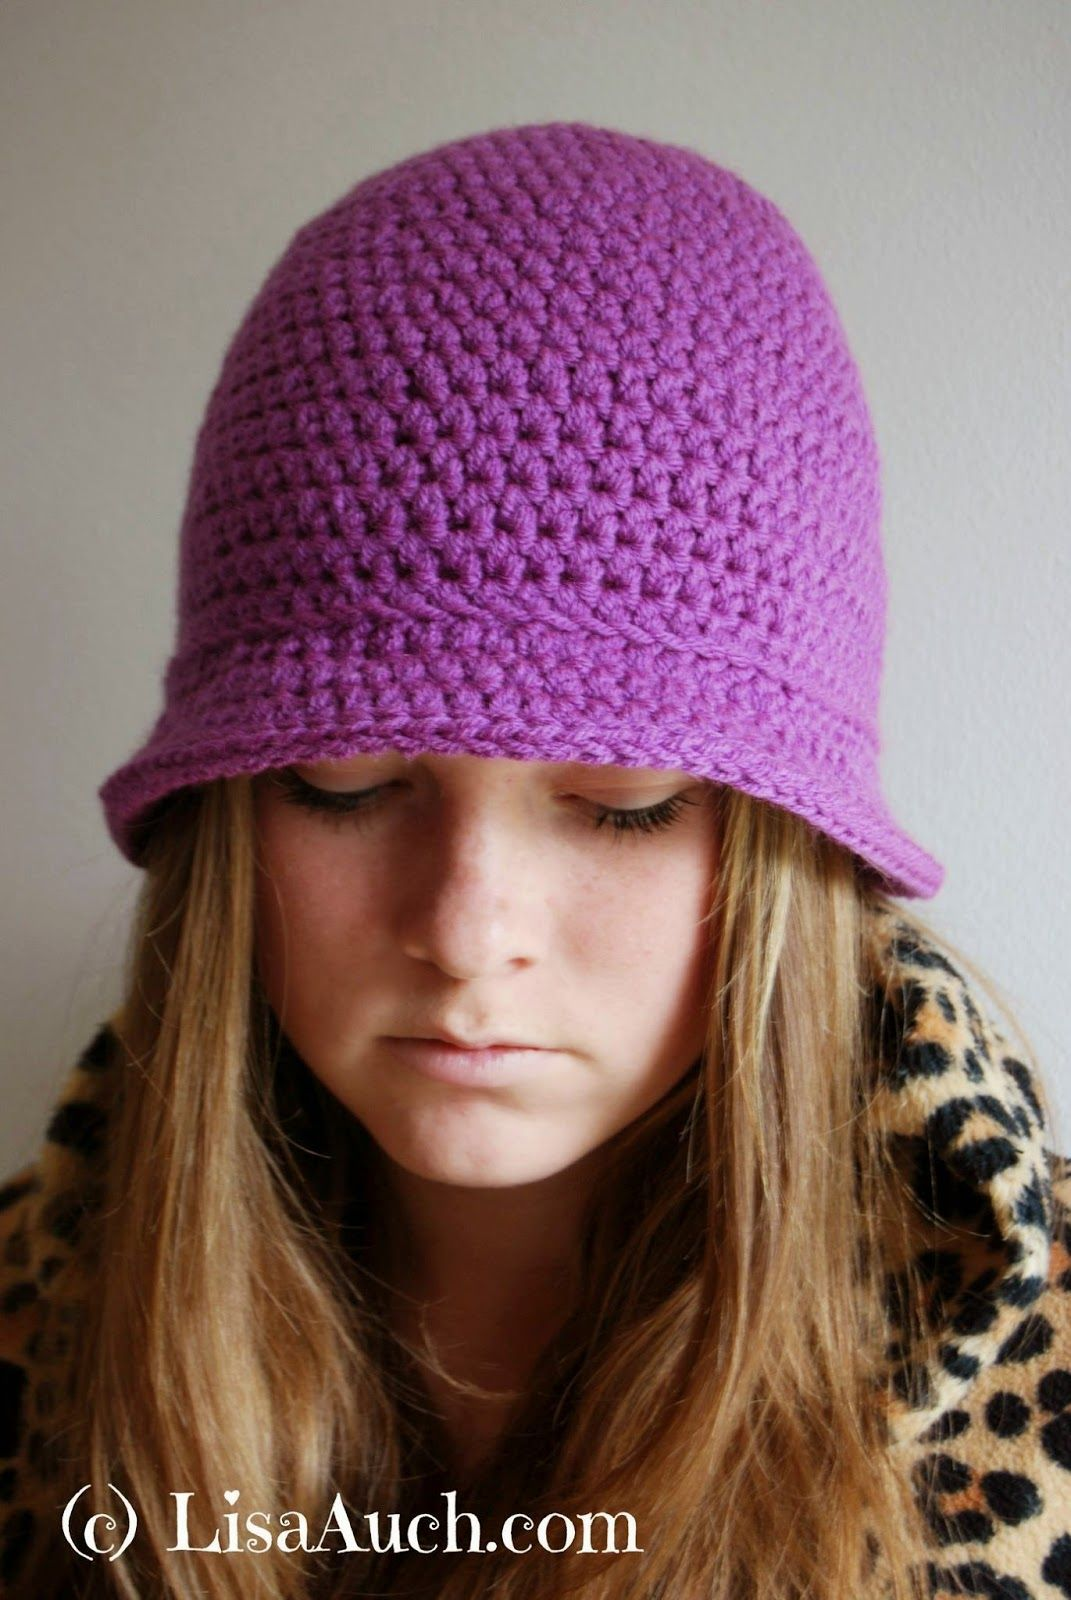 Free crochet hat patterns womans hat crochet pattern tejido free crochet hat patterns womans hat crochet pattern bankloansurffo Choice Image